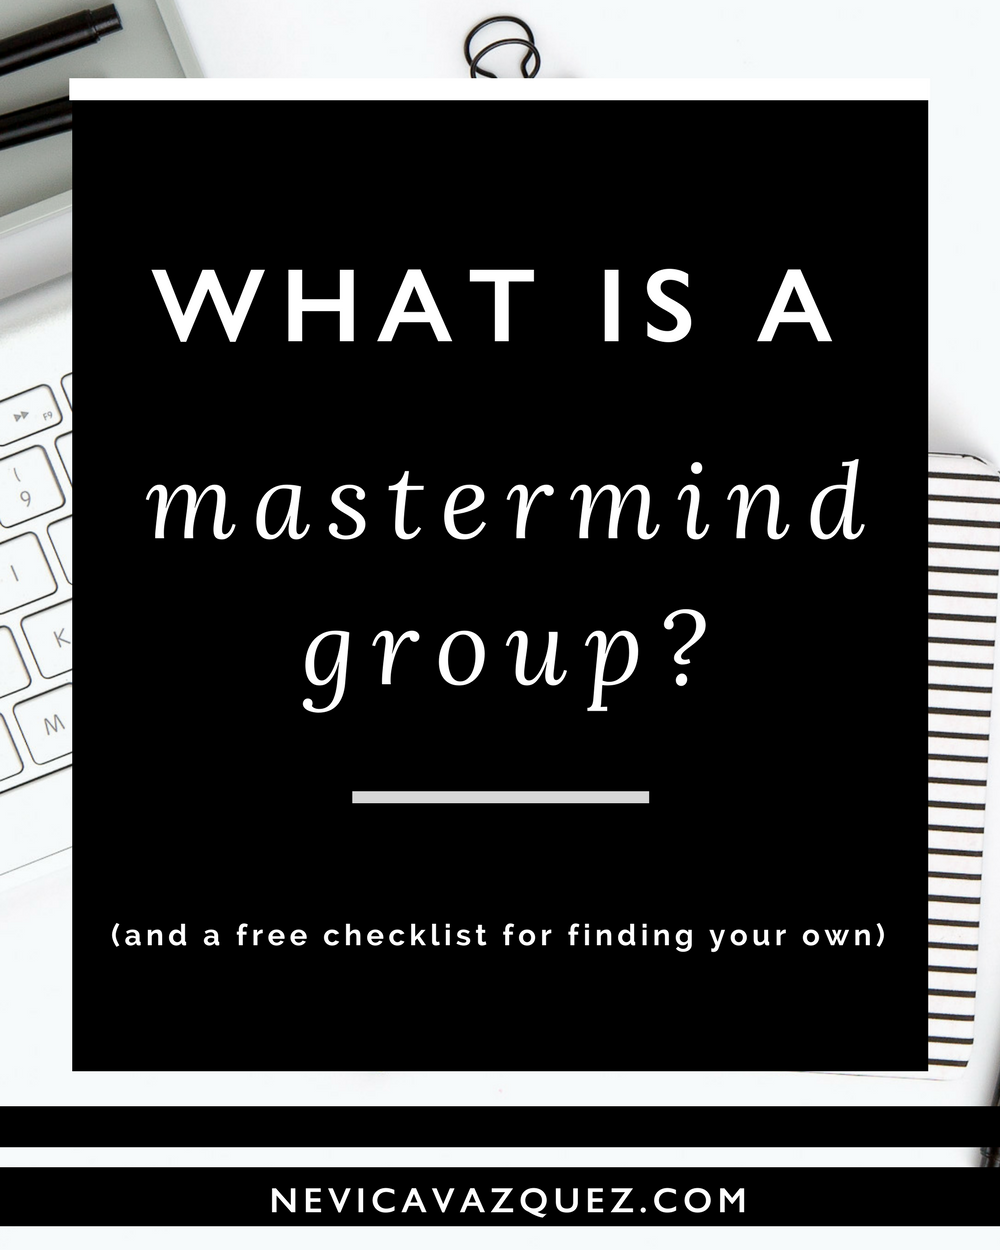 What Is A Mastermind Group?